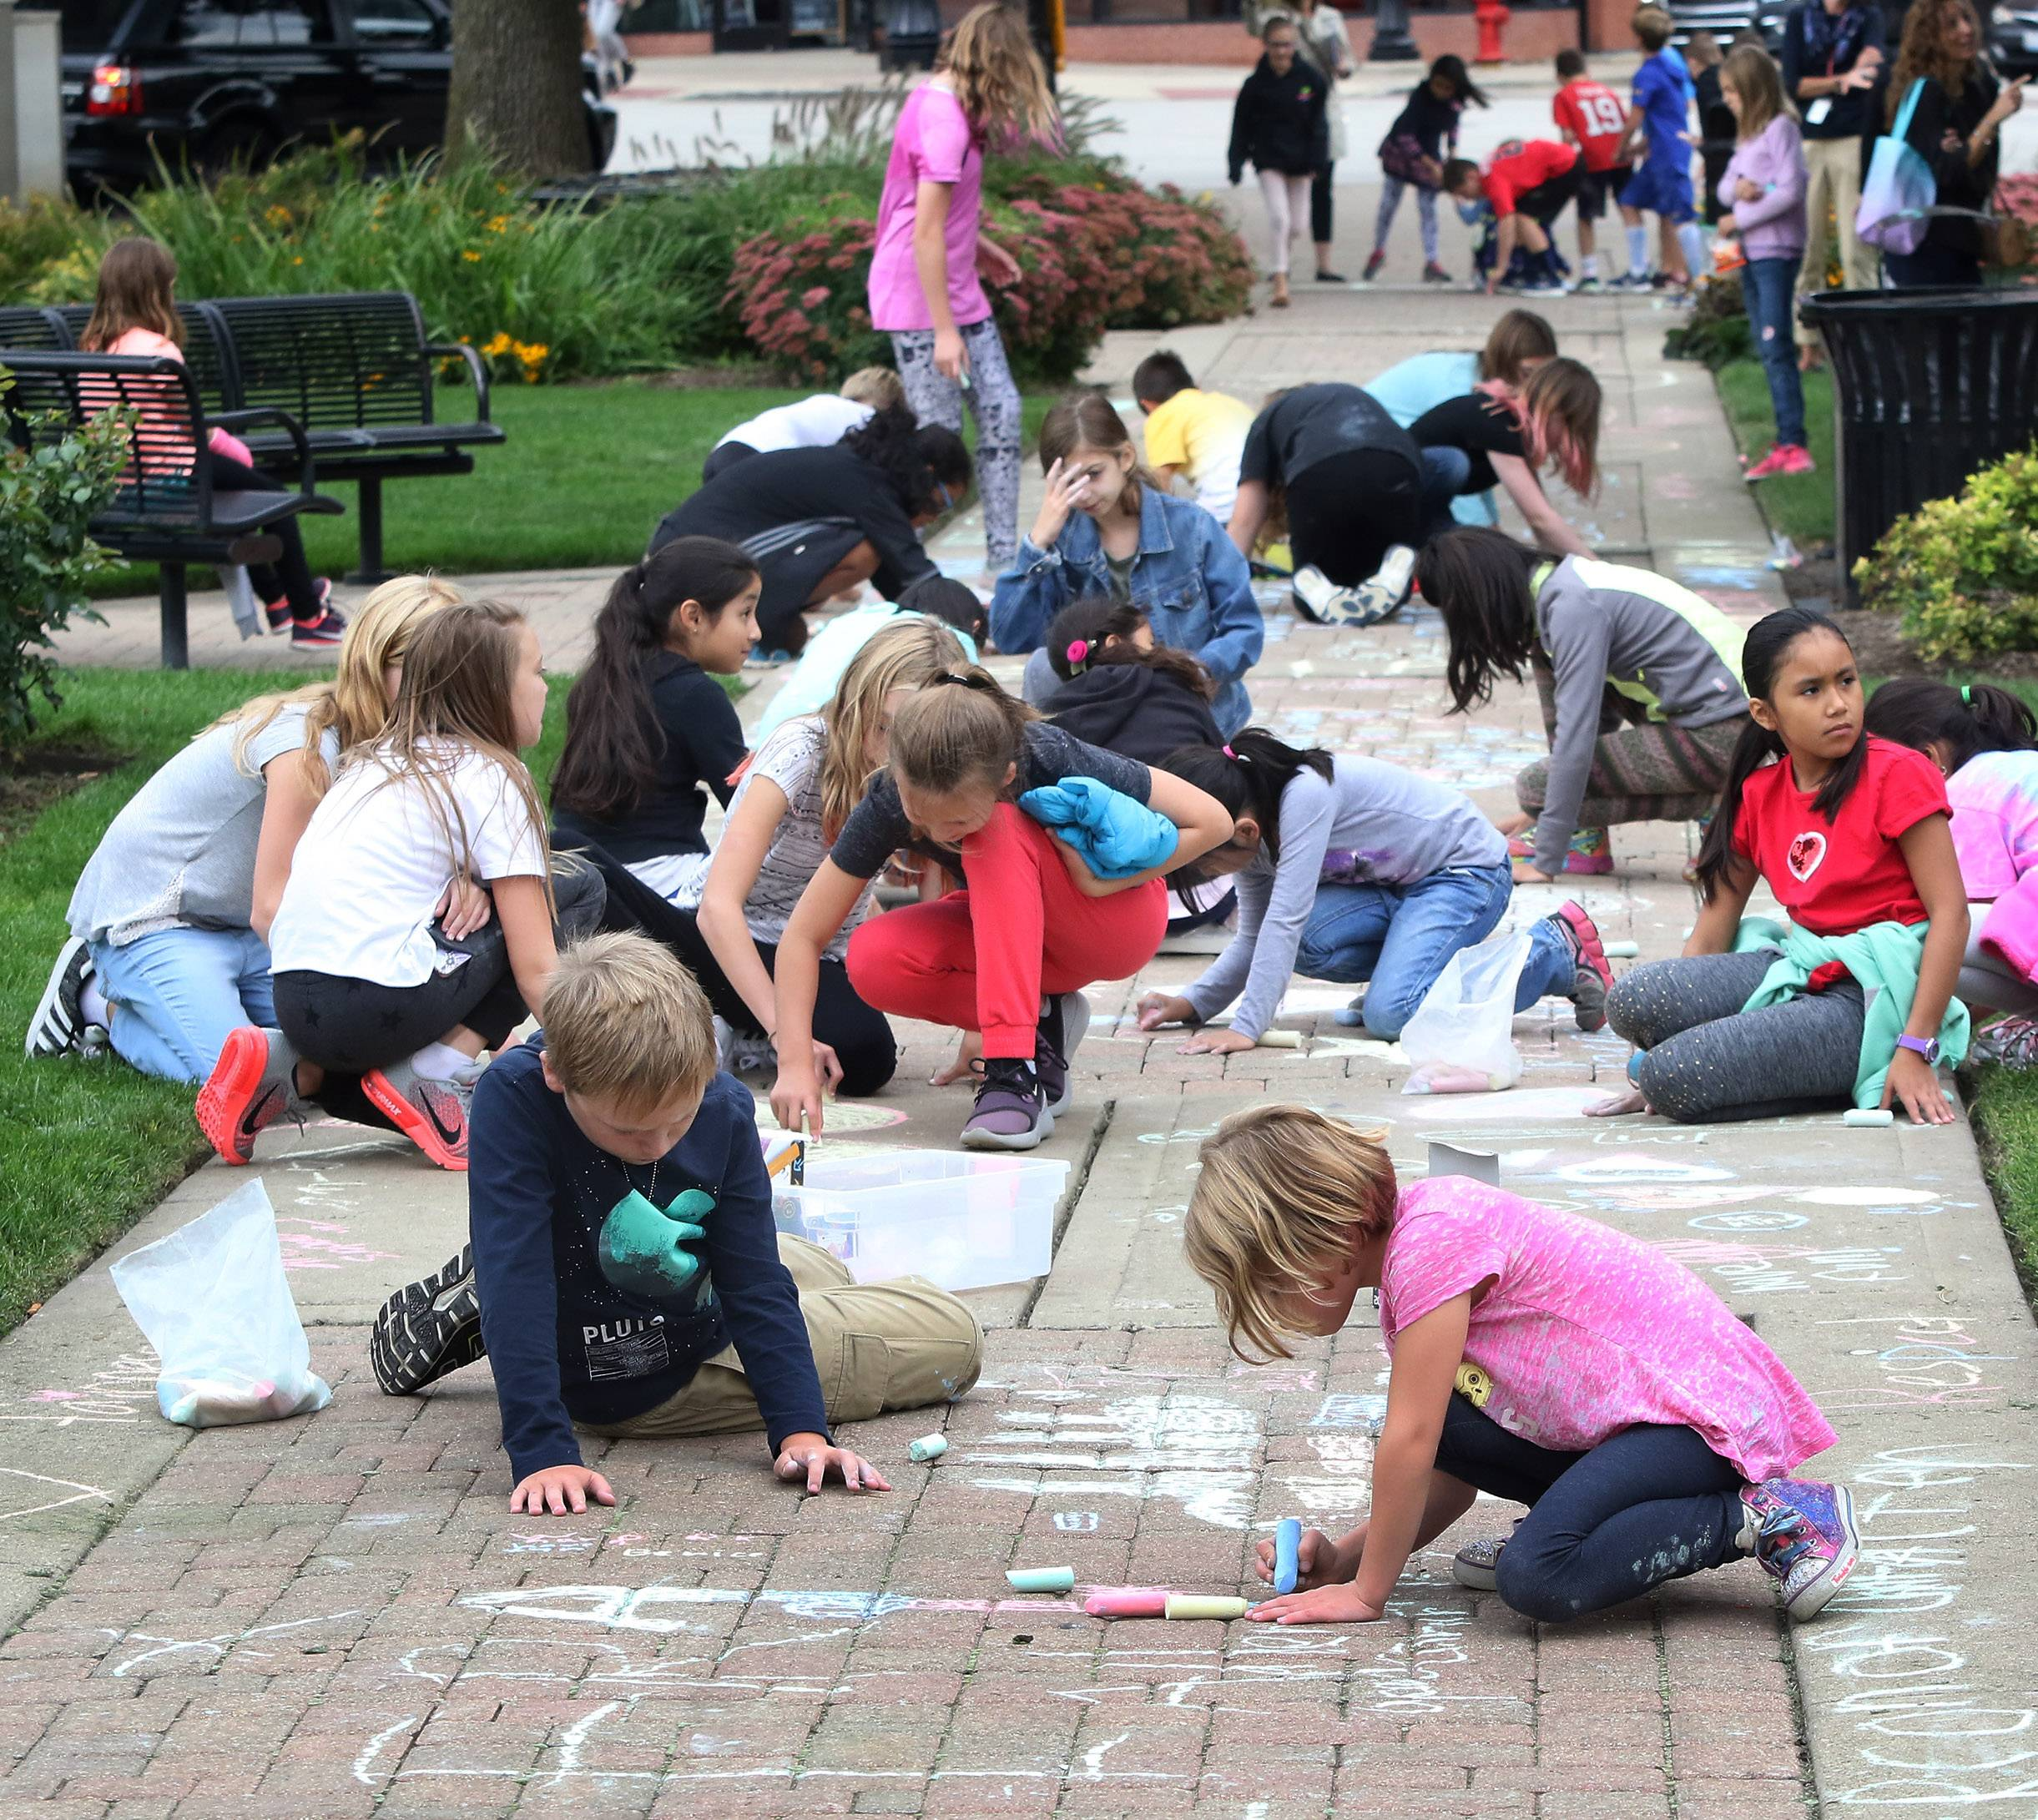 Adler Park School students draw on the sidewalk around Cook Park in Libertyville on Thursday. Libertyville Elementary District 70 fourth- and fifth-graders participated in the Chalk Walk project as part of the national character-building program Character Counts!